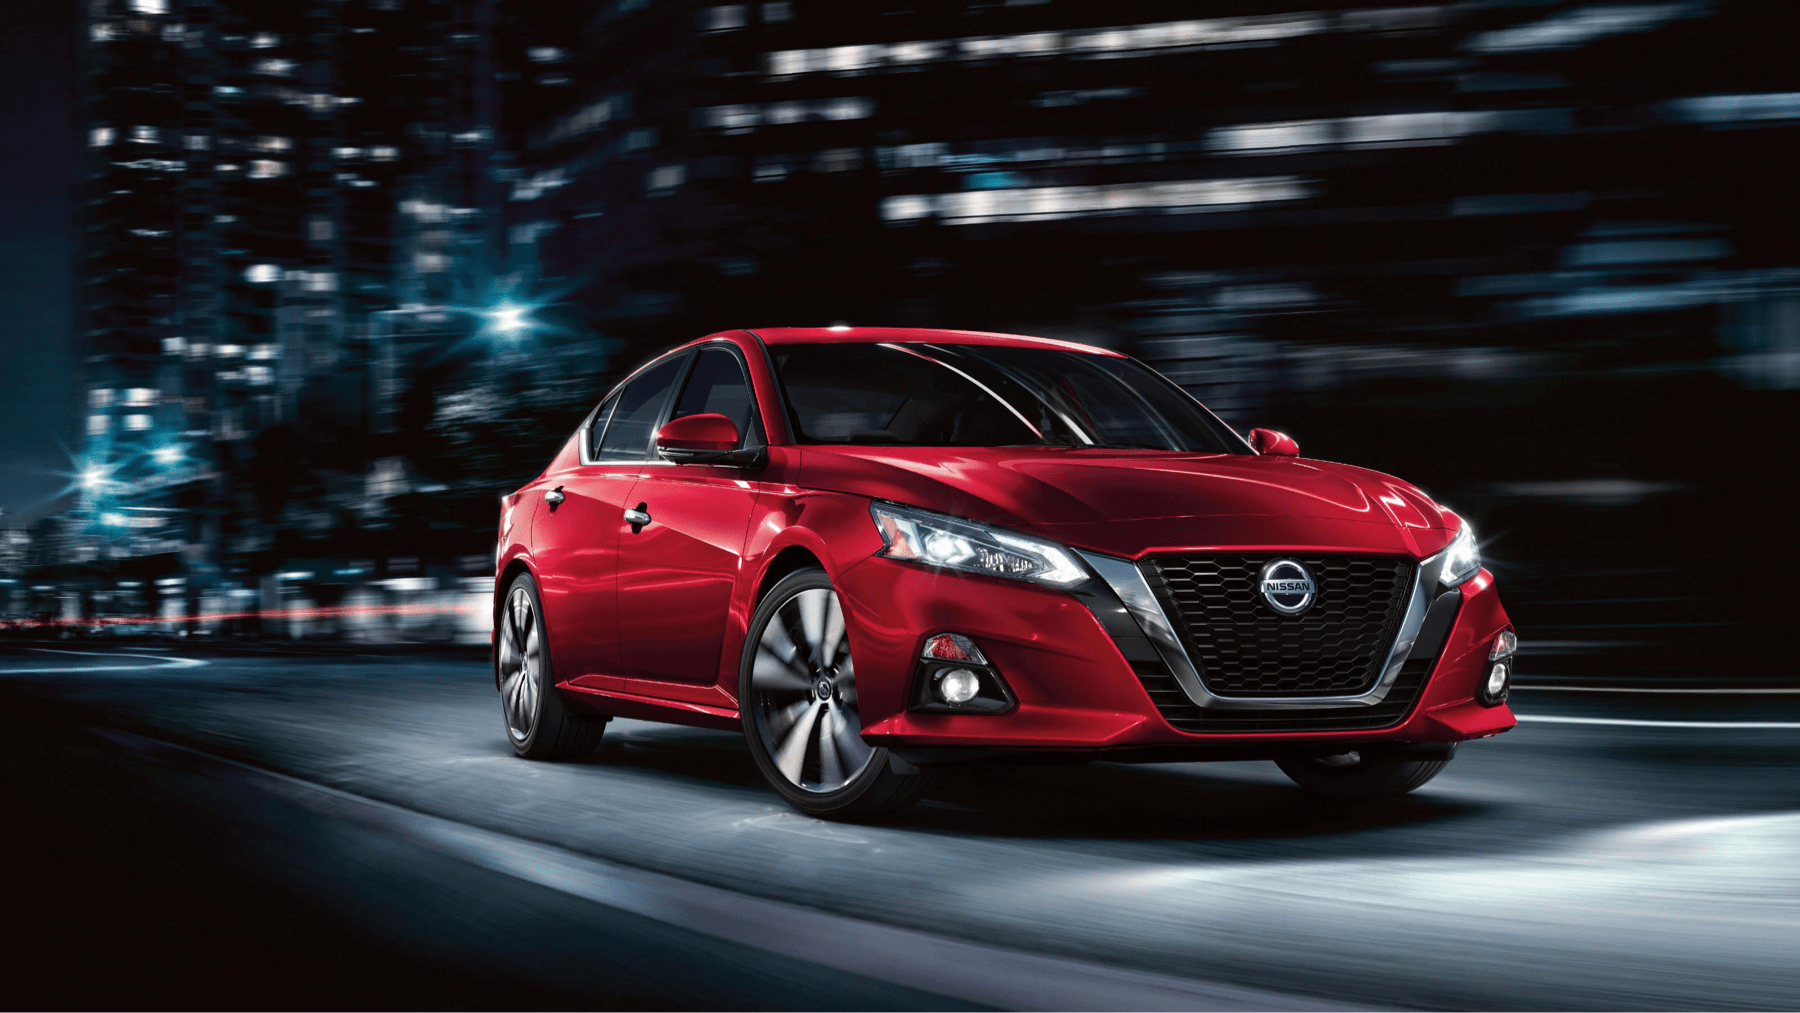 2021 Nissan Altima in red